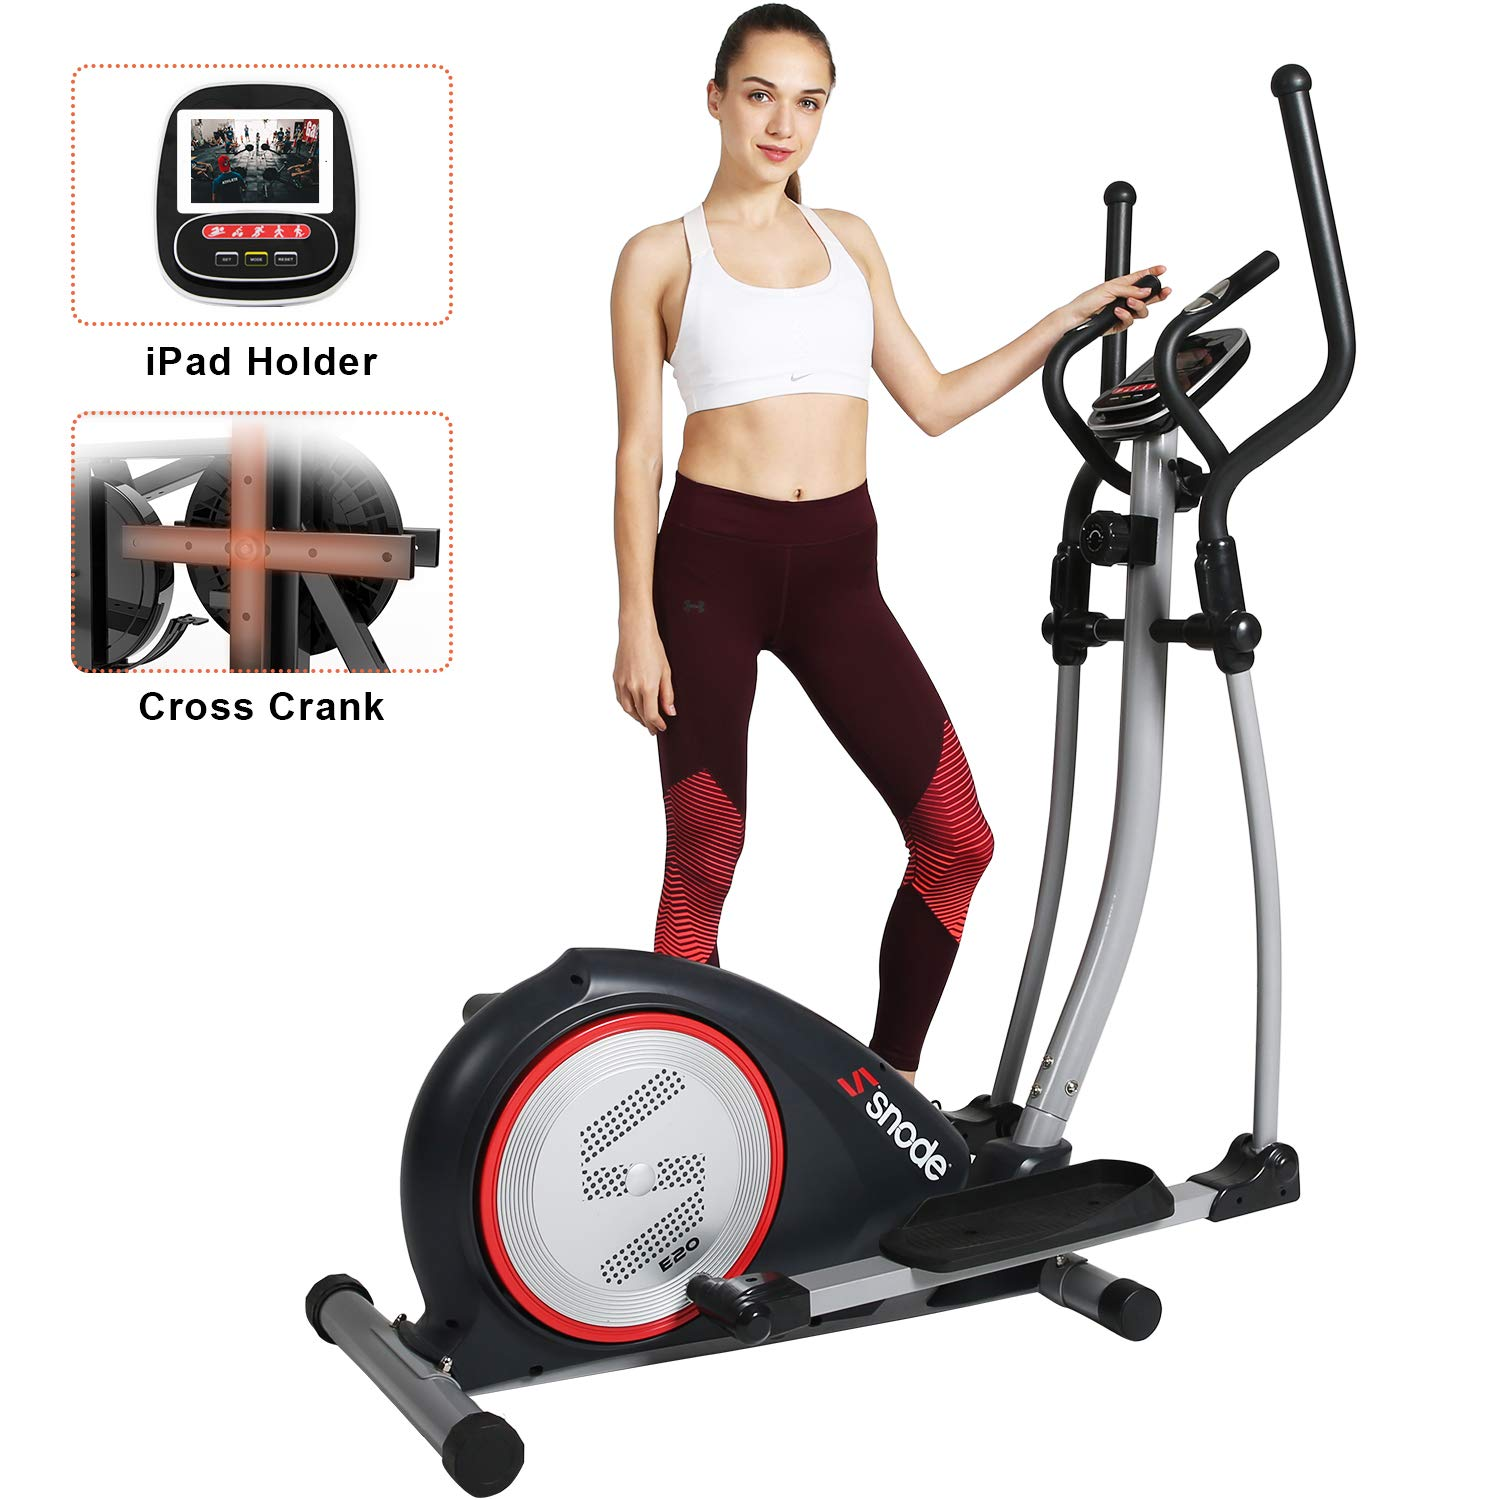 SNODE Elliptical Machine Trainer, Magnetic Elliptical Exercise Training Machine with Cross Crank and LCD Monitor(Model: E20 New) ... by SNODE